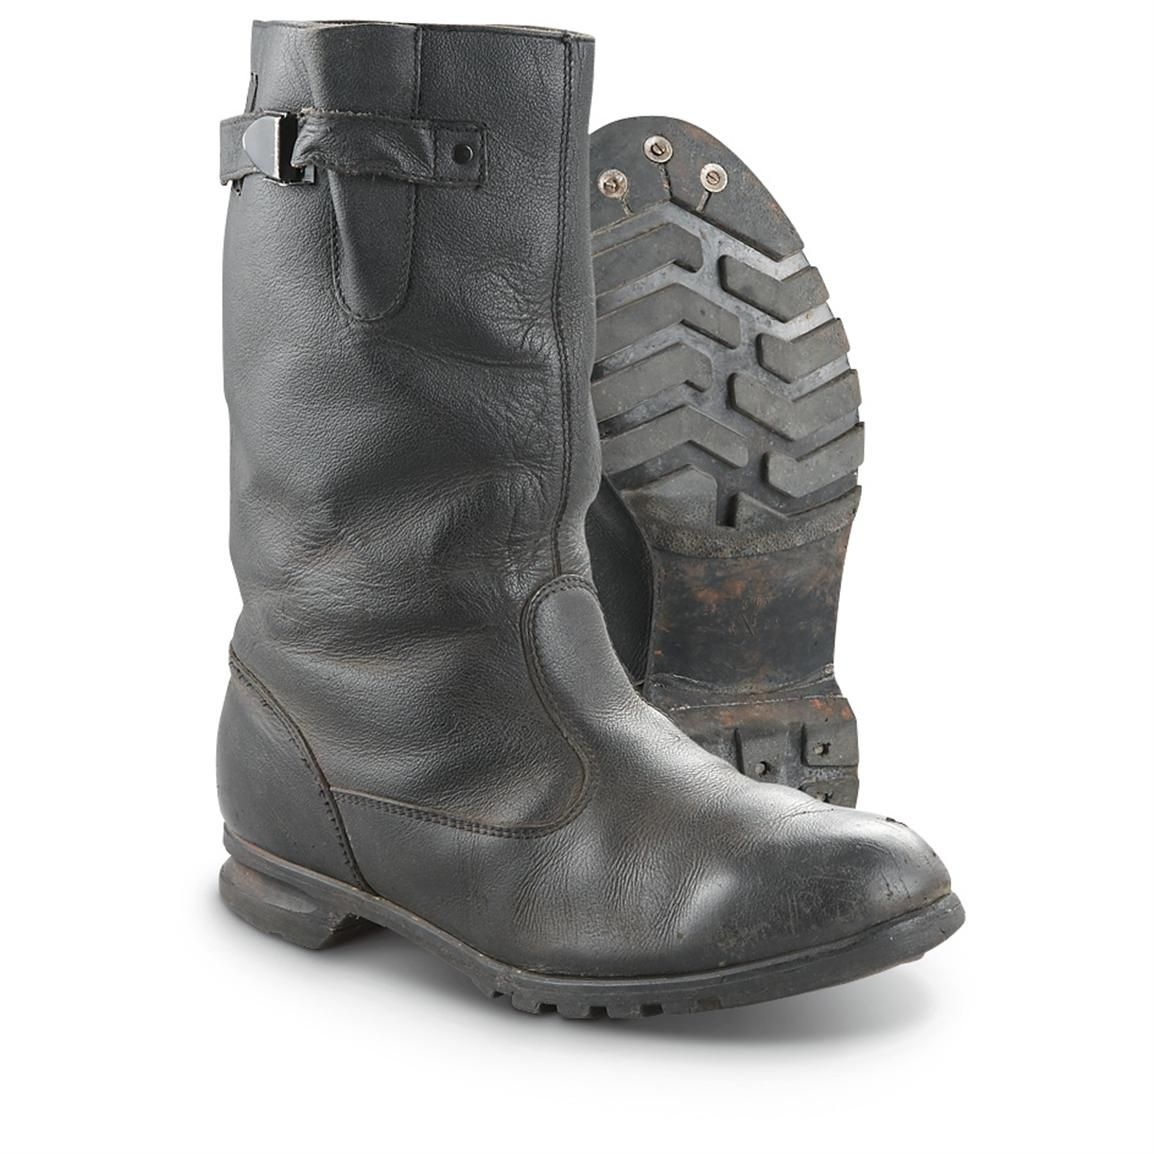 Used Czech Military Surplus Leather Boots, Black | Products, Boots ...